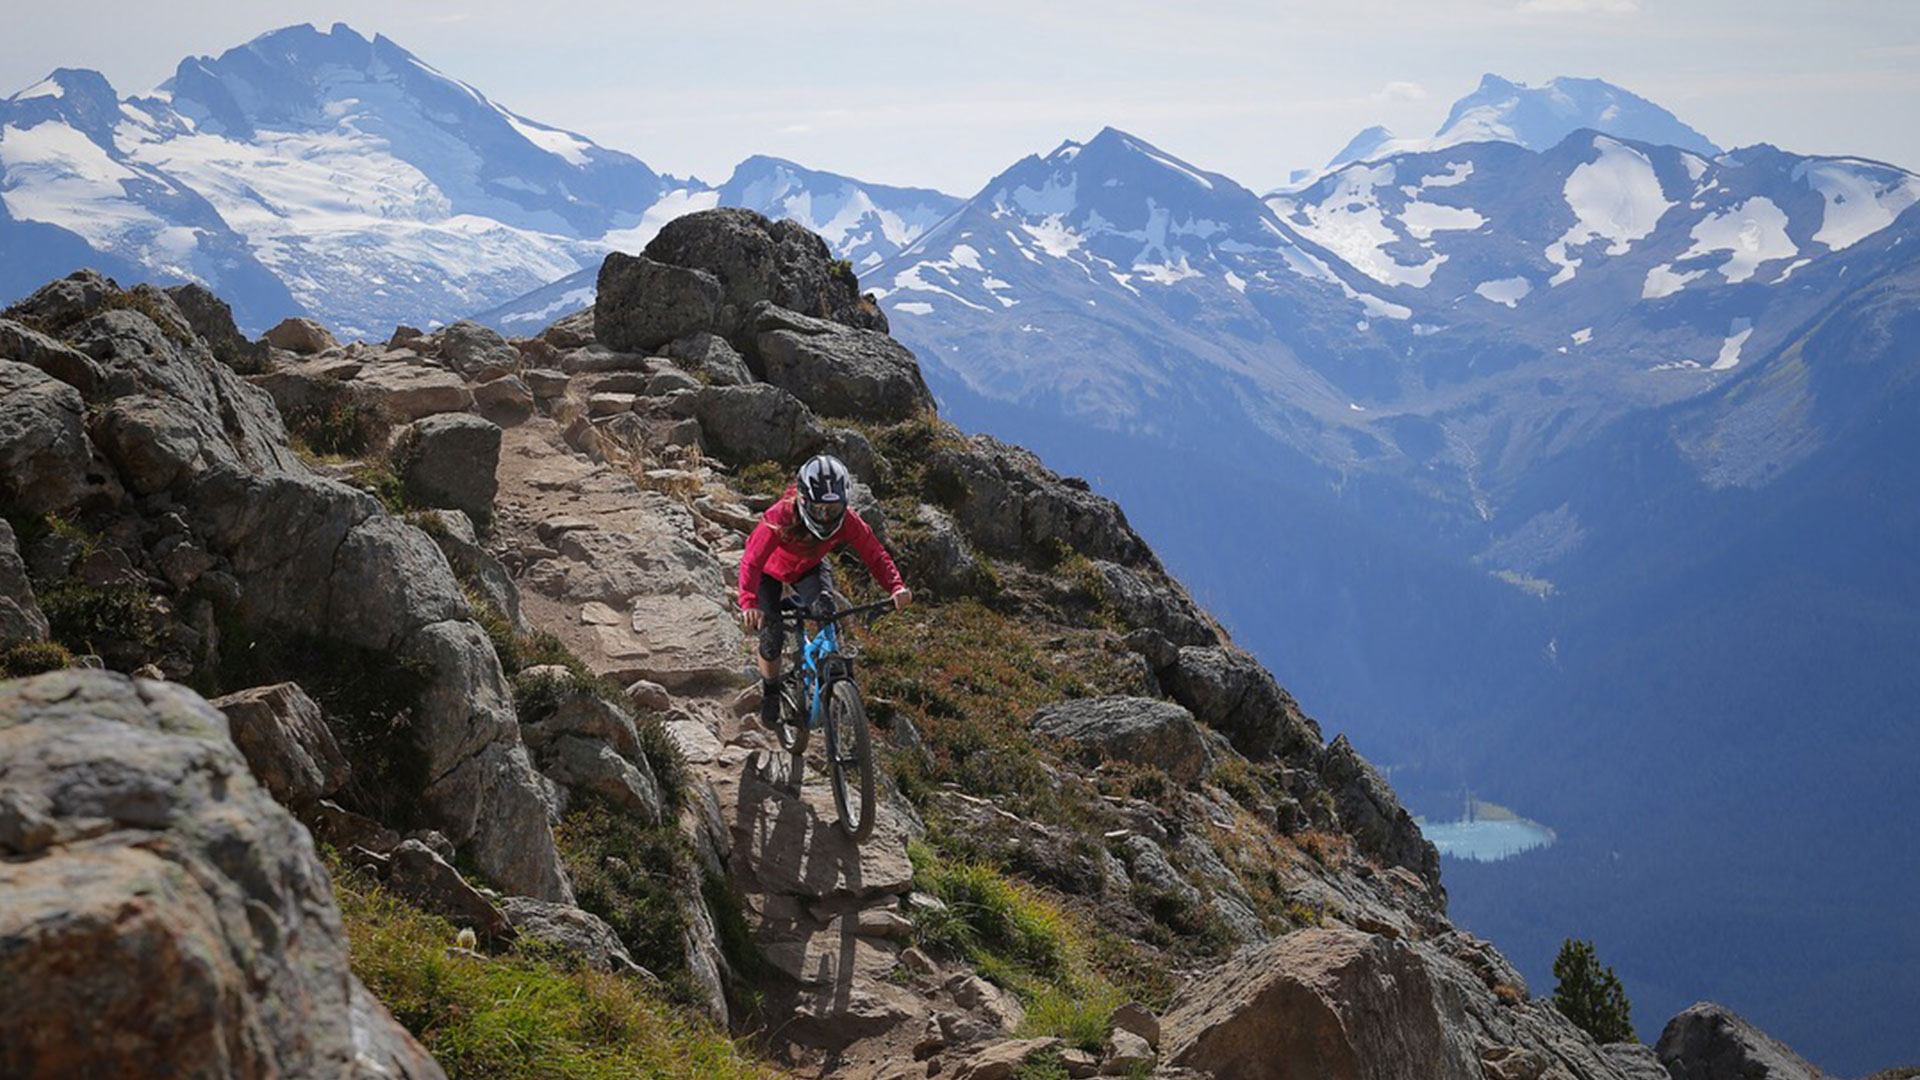 Mountain biker riding down the famous Top of the World trail in Whistler, BC